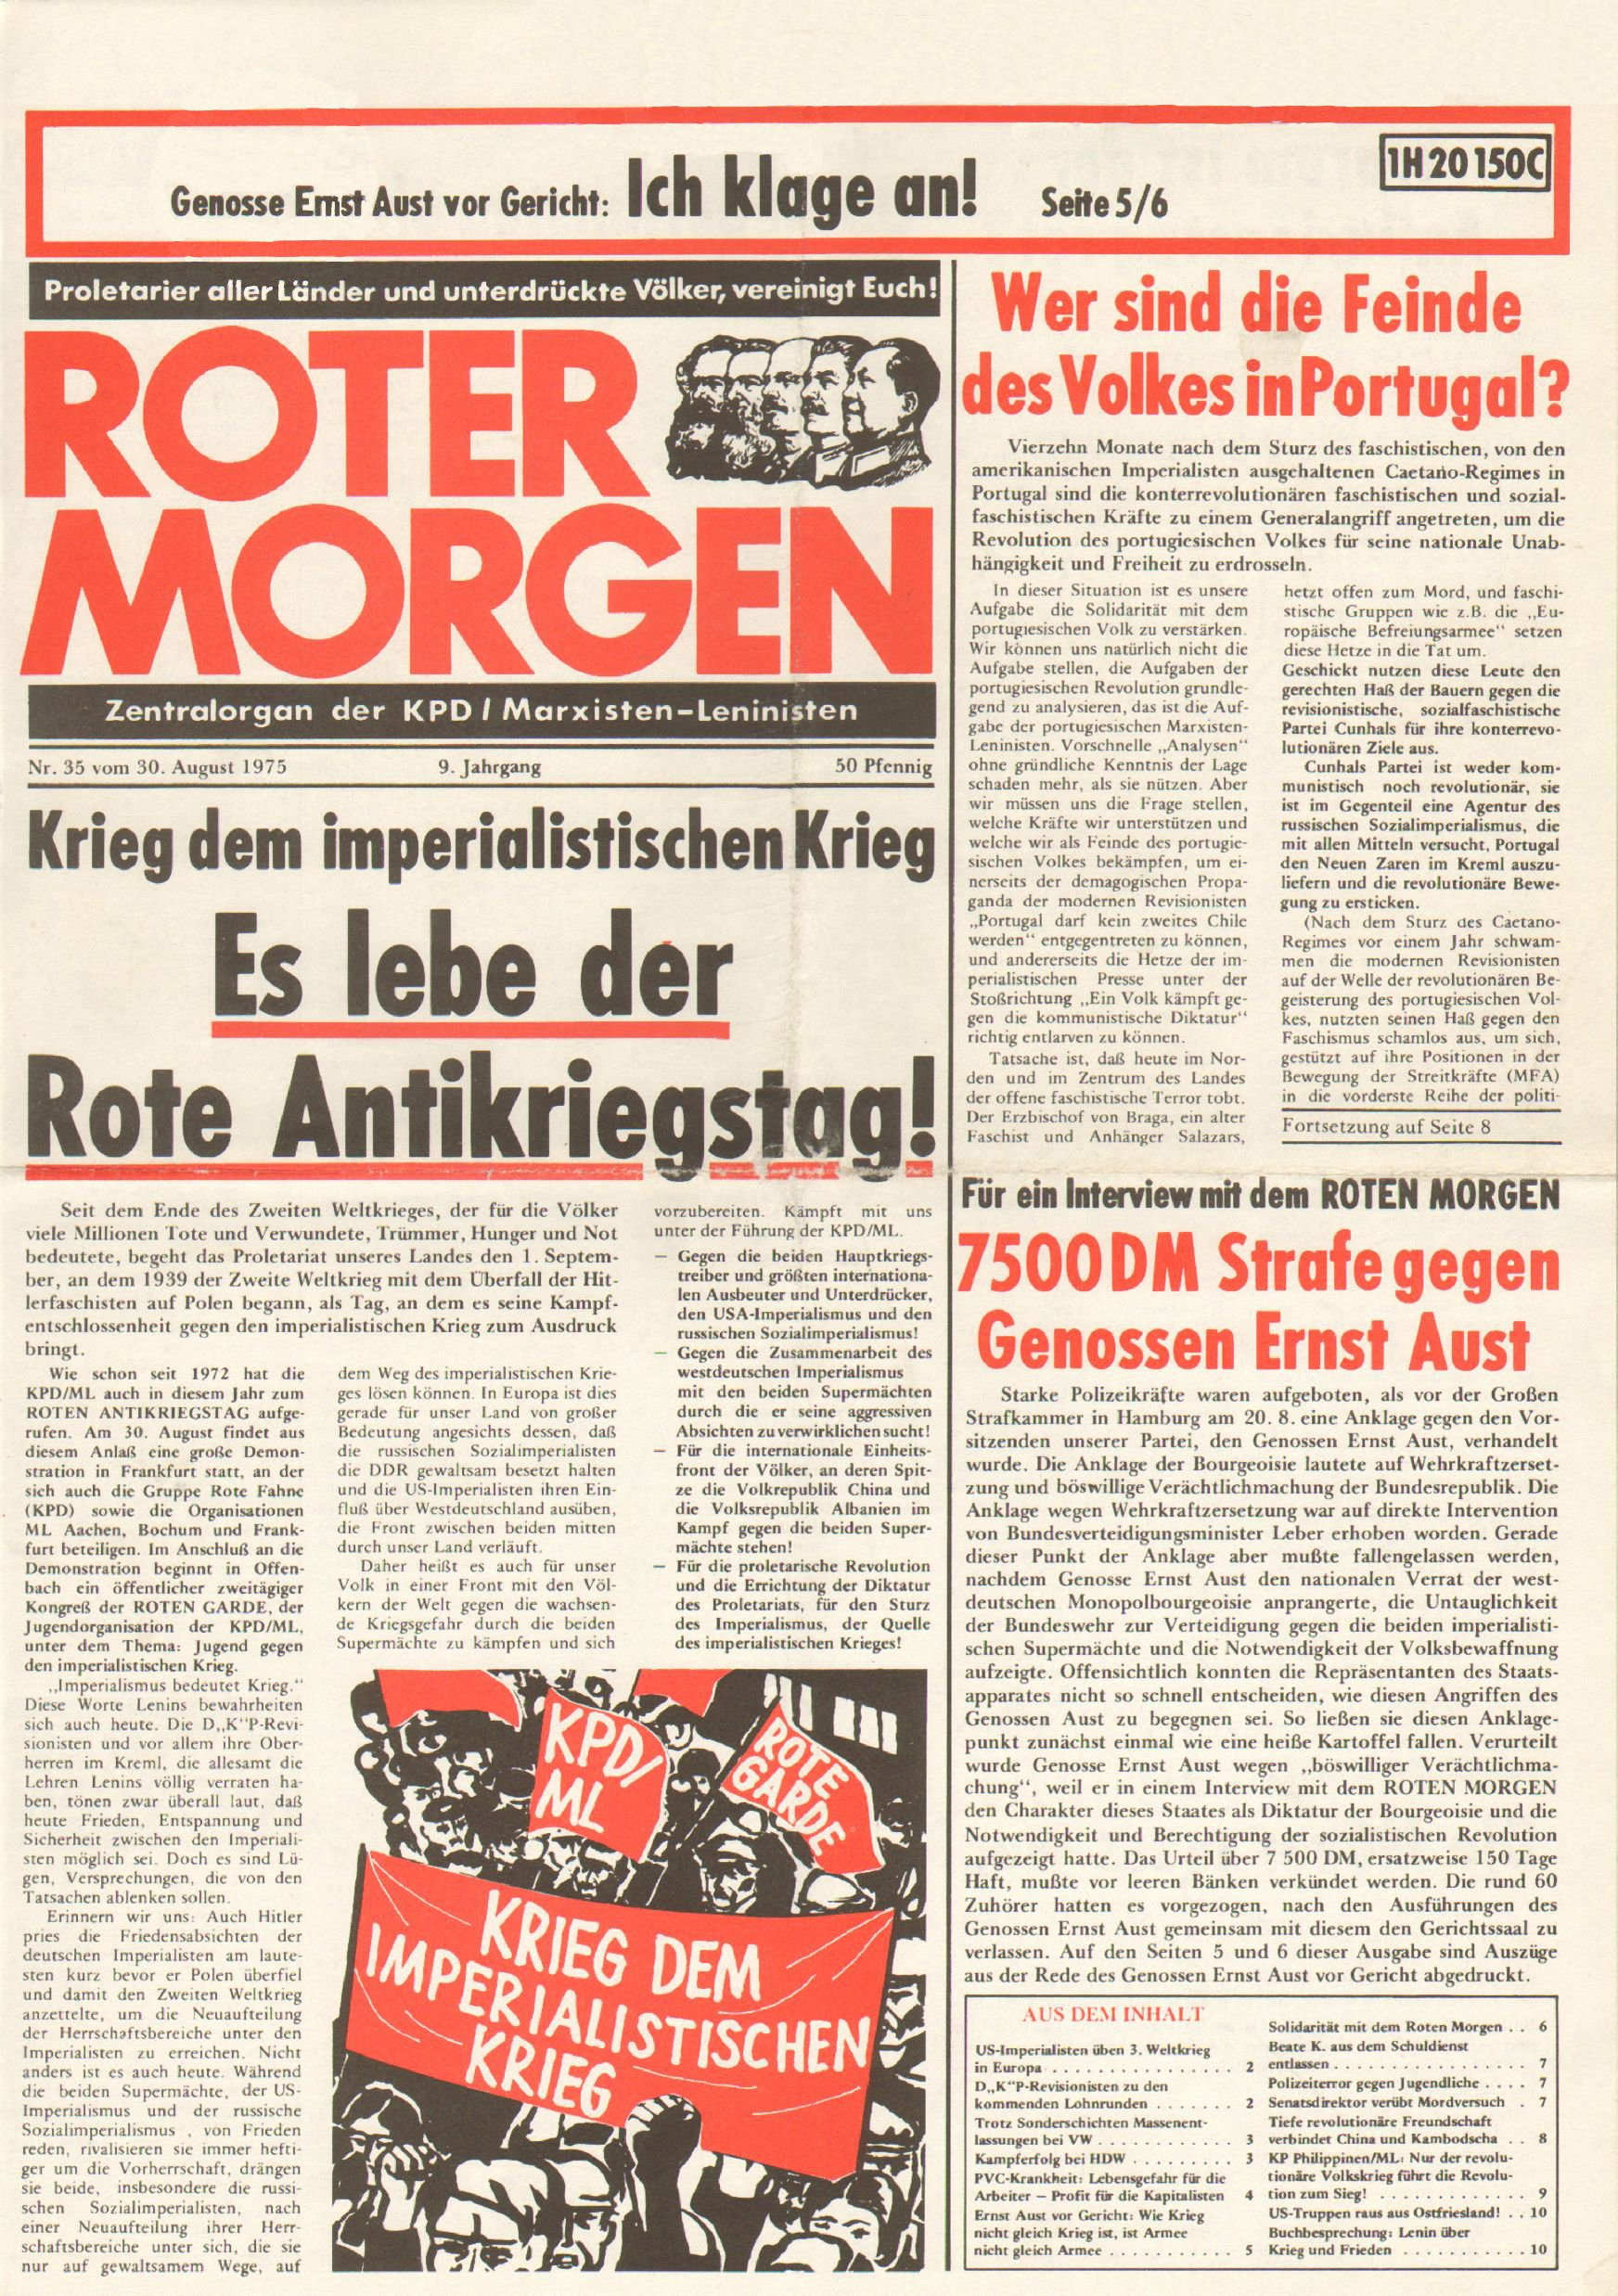 Roter Morgen, 9. Jg., 30. August 1975, Nr. 35, Seite 1